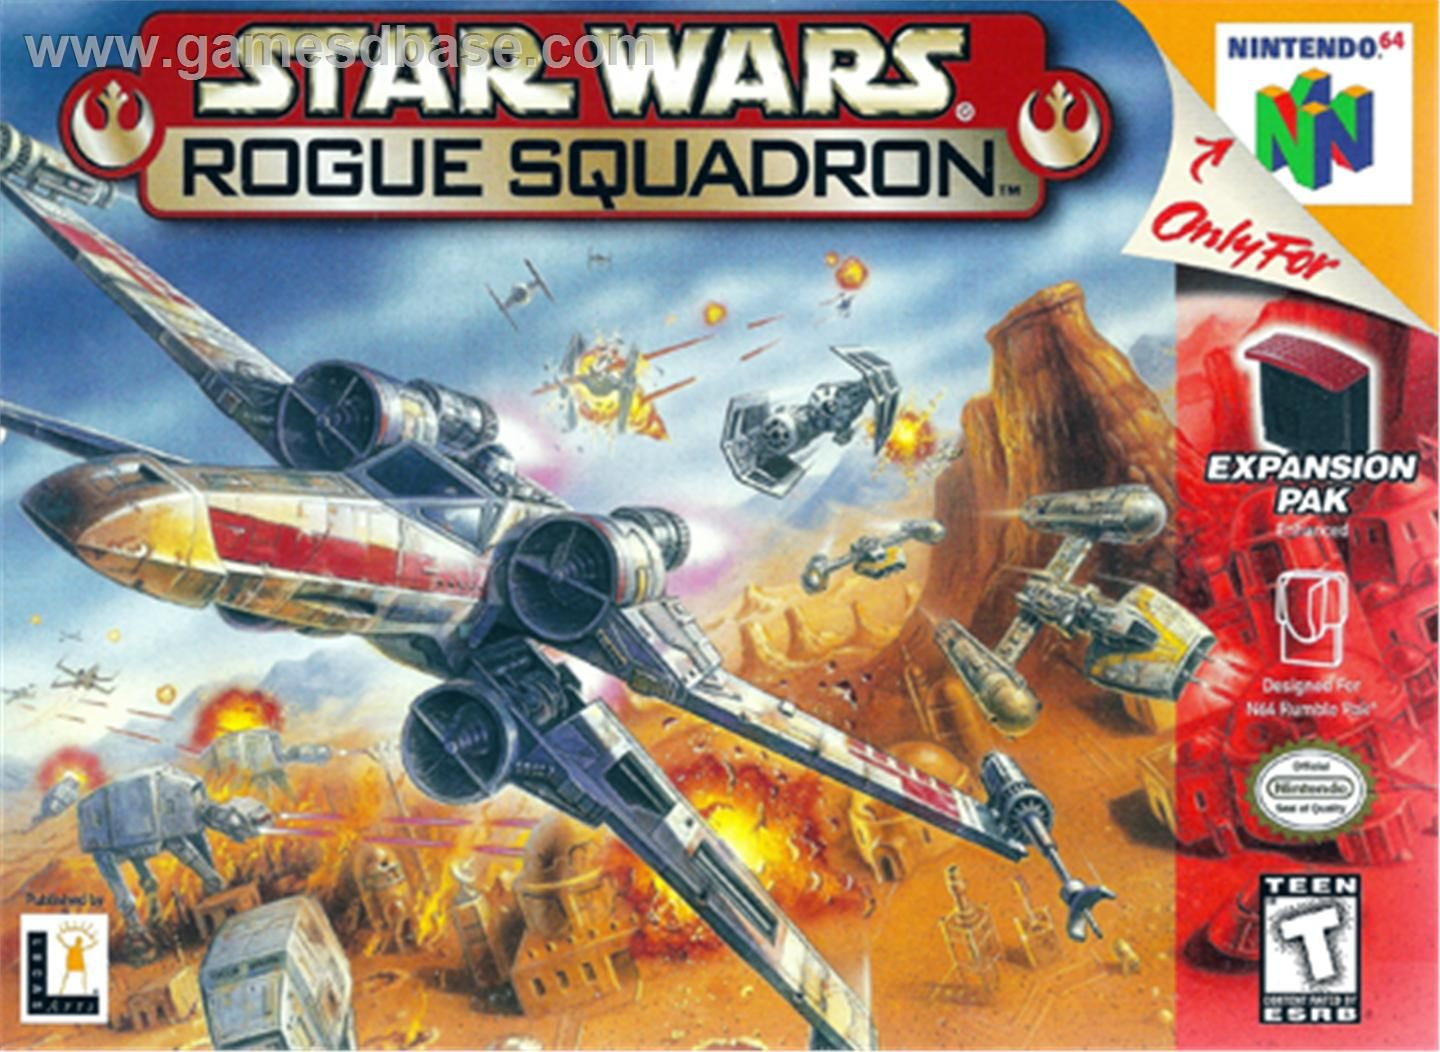 Star Wars Rogue Squadron N64 Box Art Google Search Star Wars